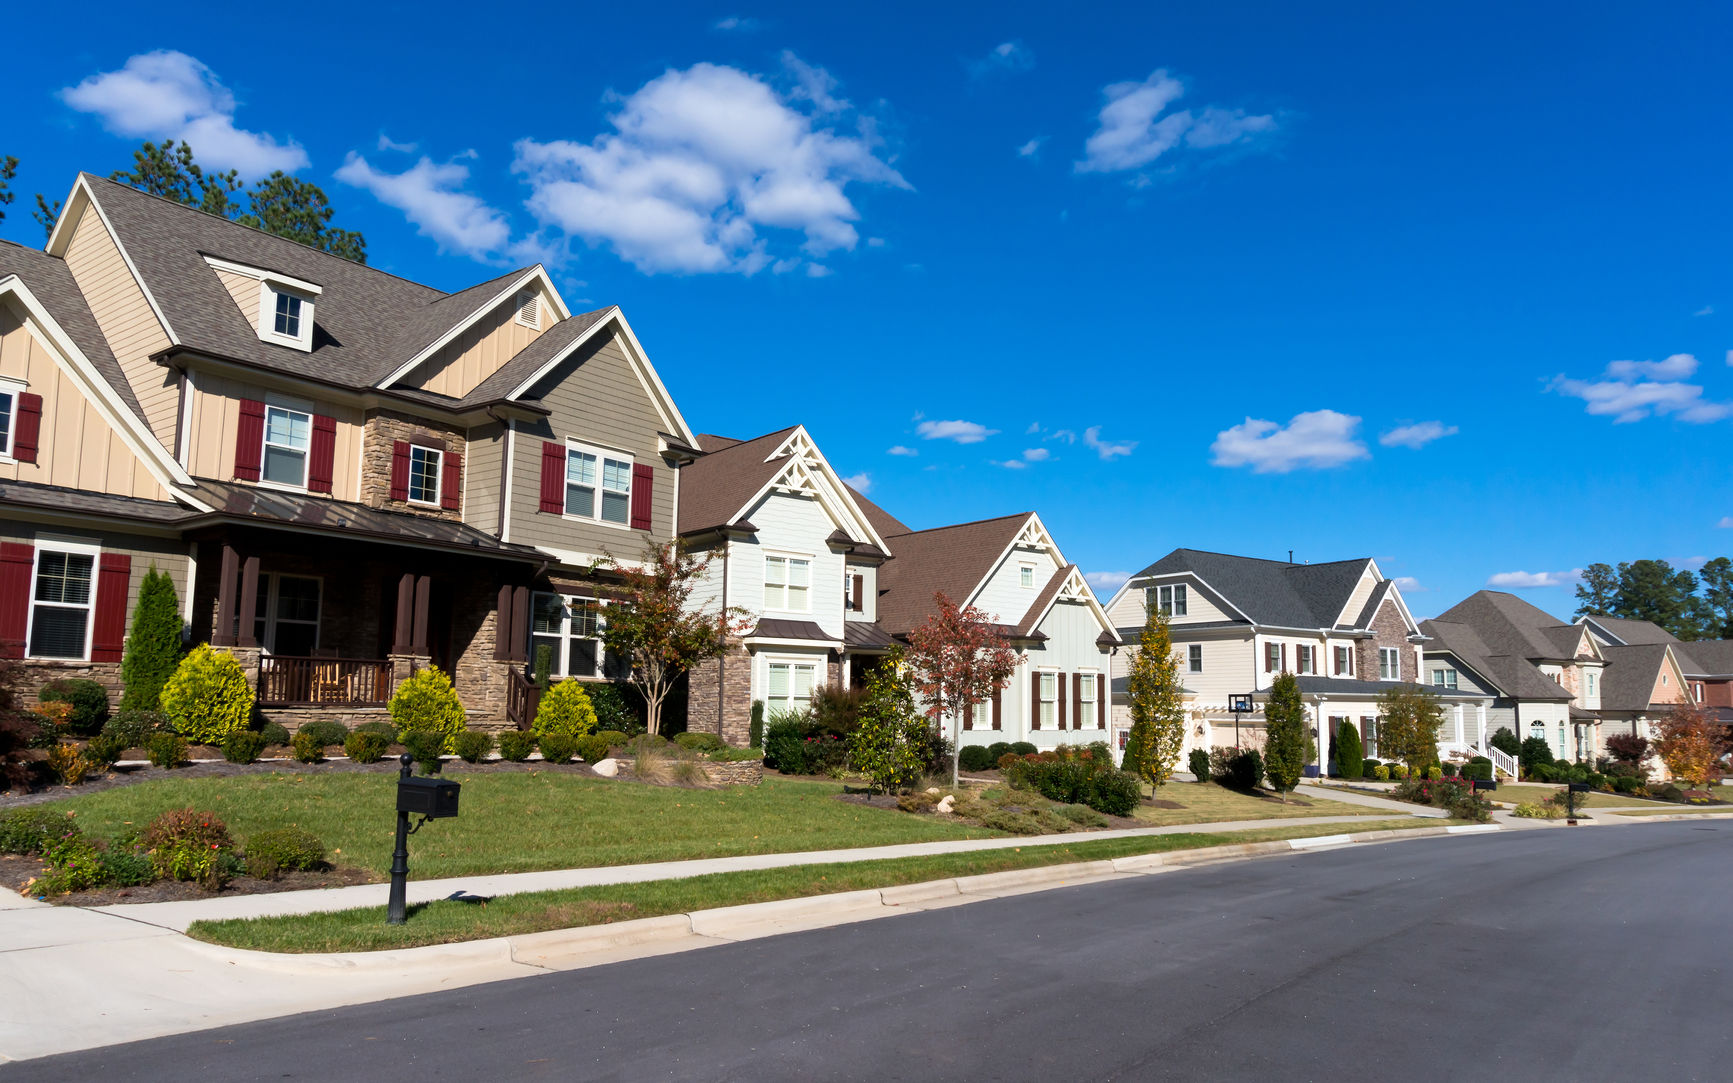 31403009 - street of large suburban homes